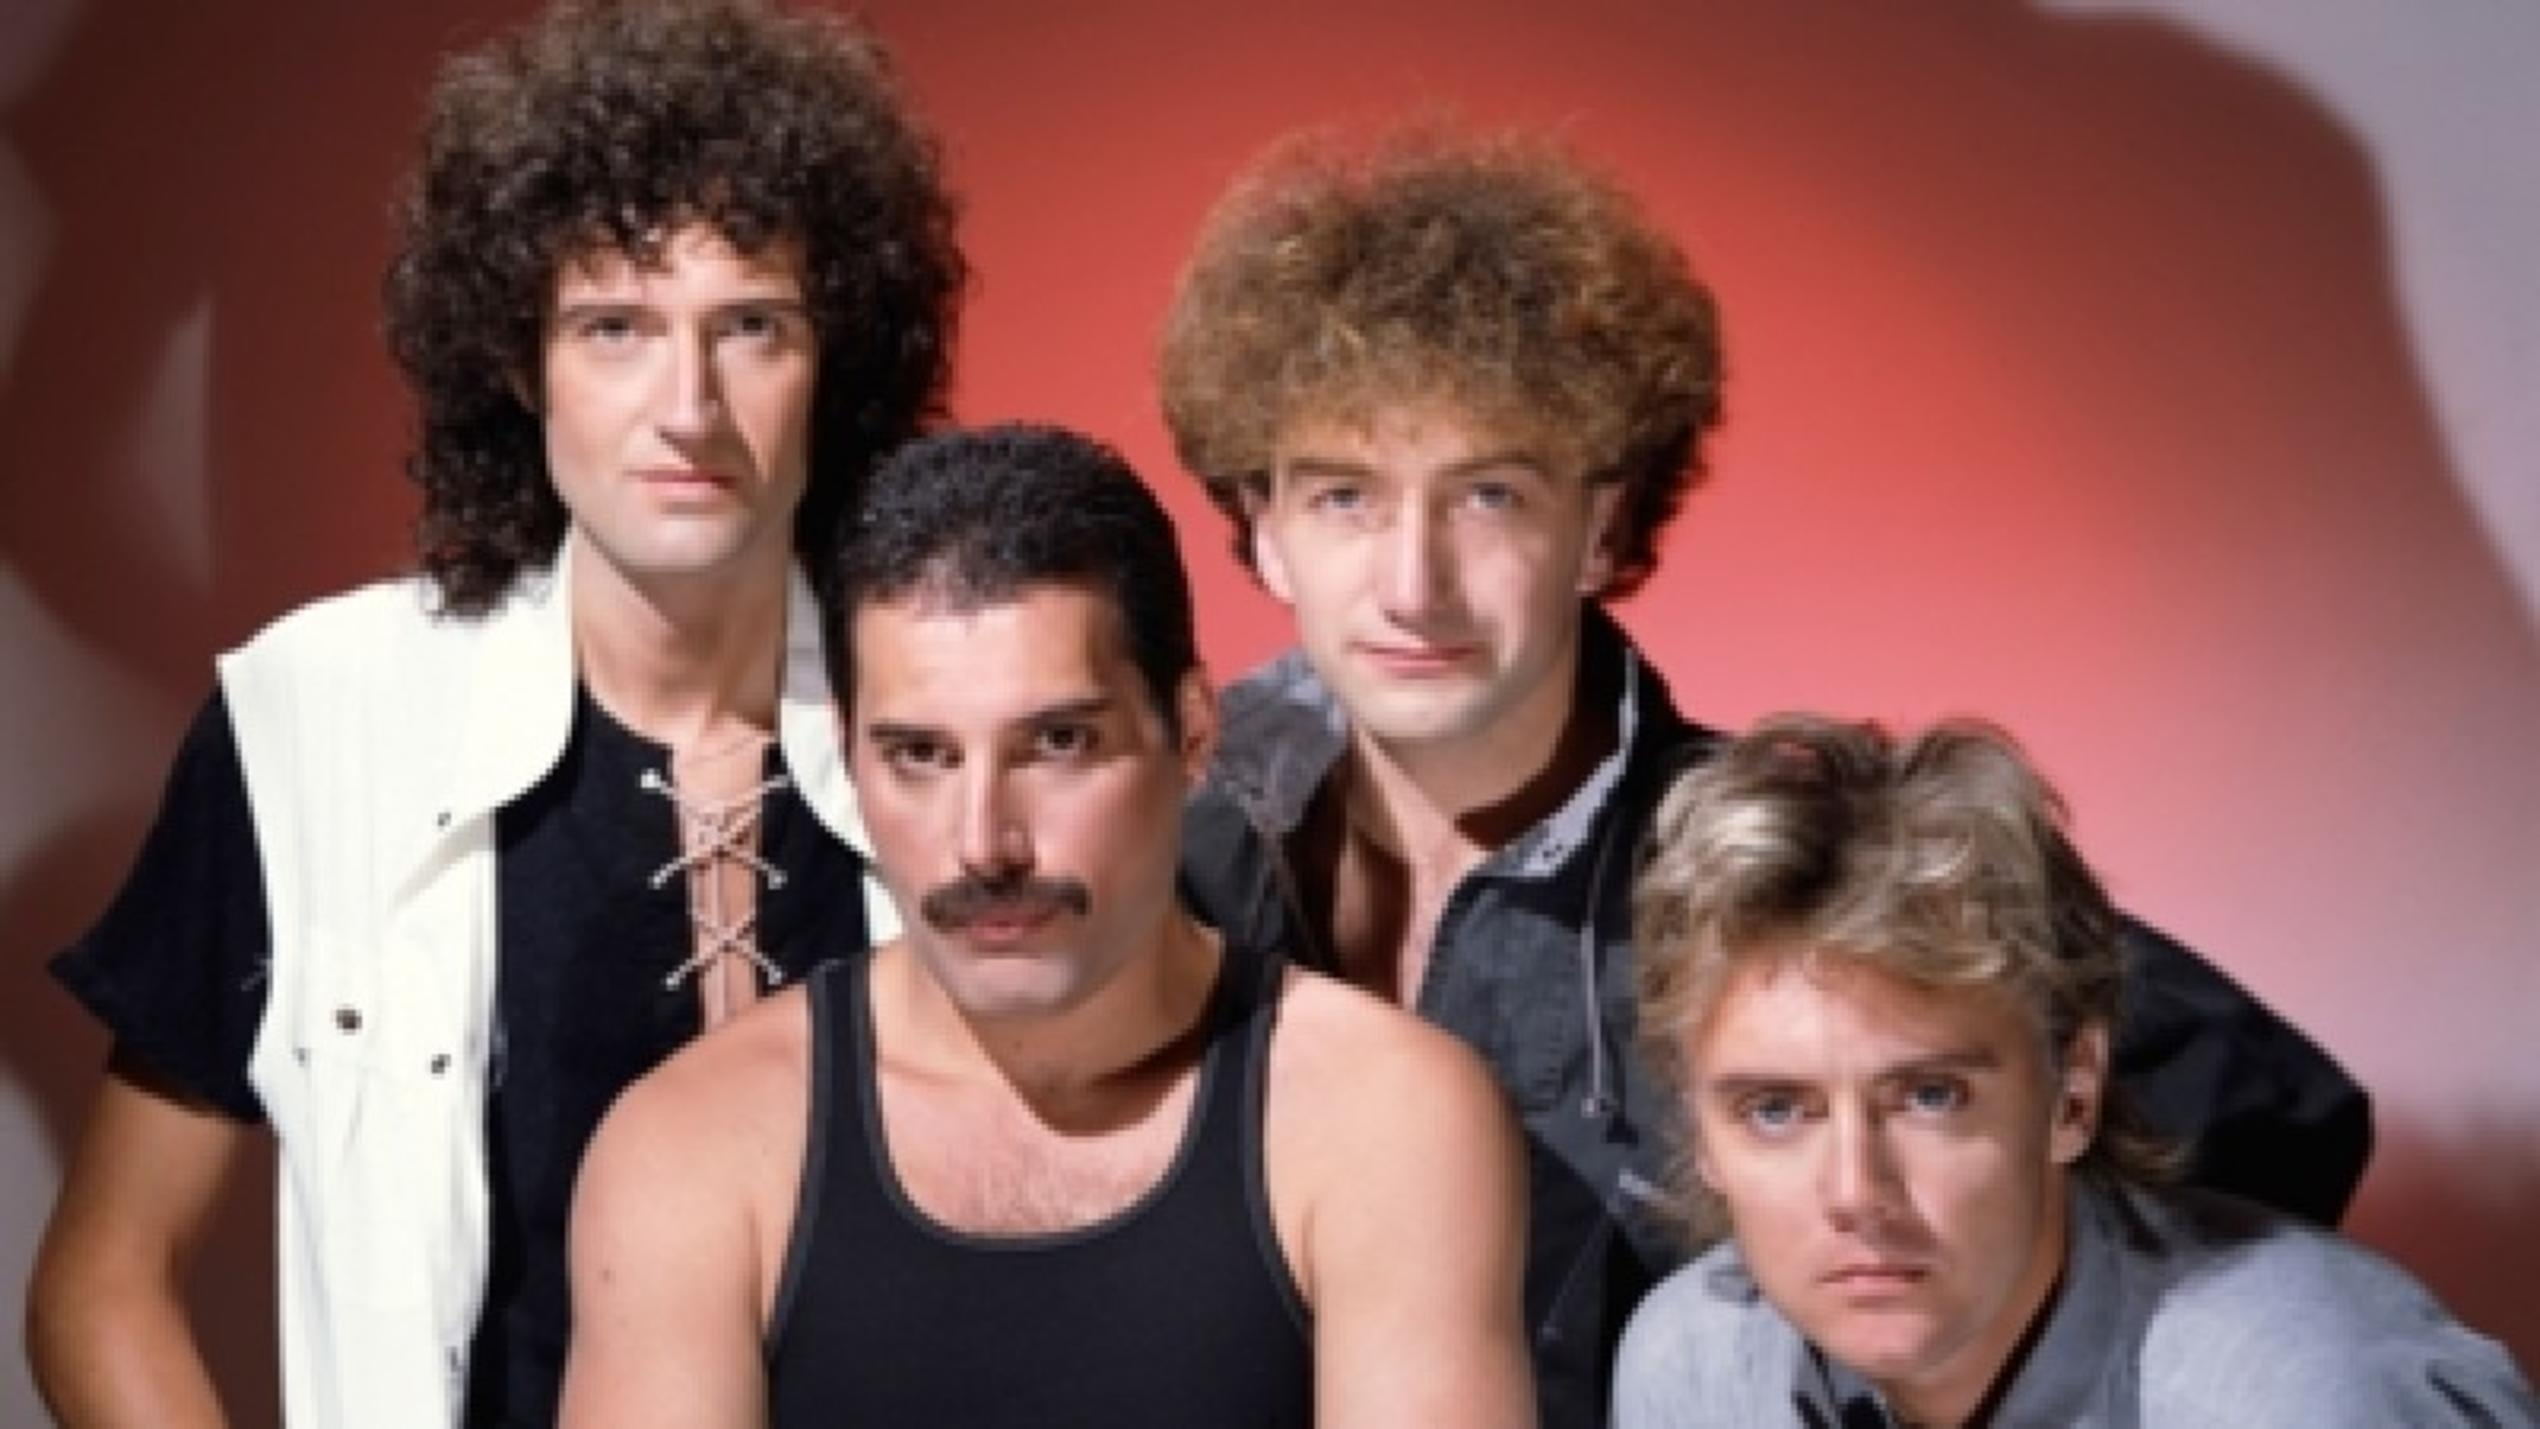 Das Doku-Event We are the Champions - 40 Jahre Queen